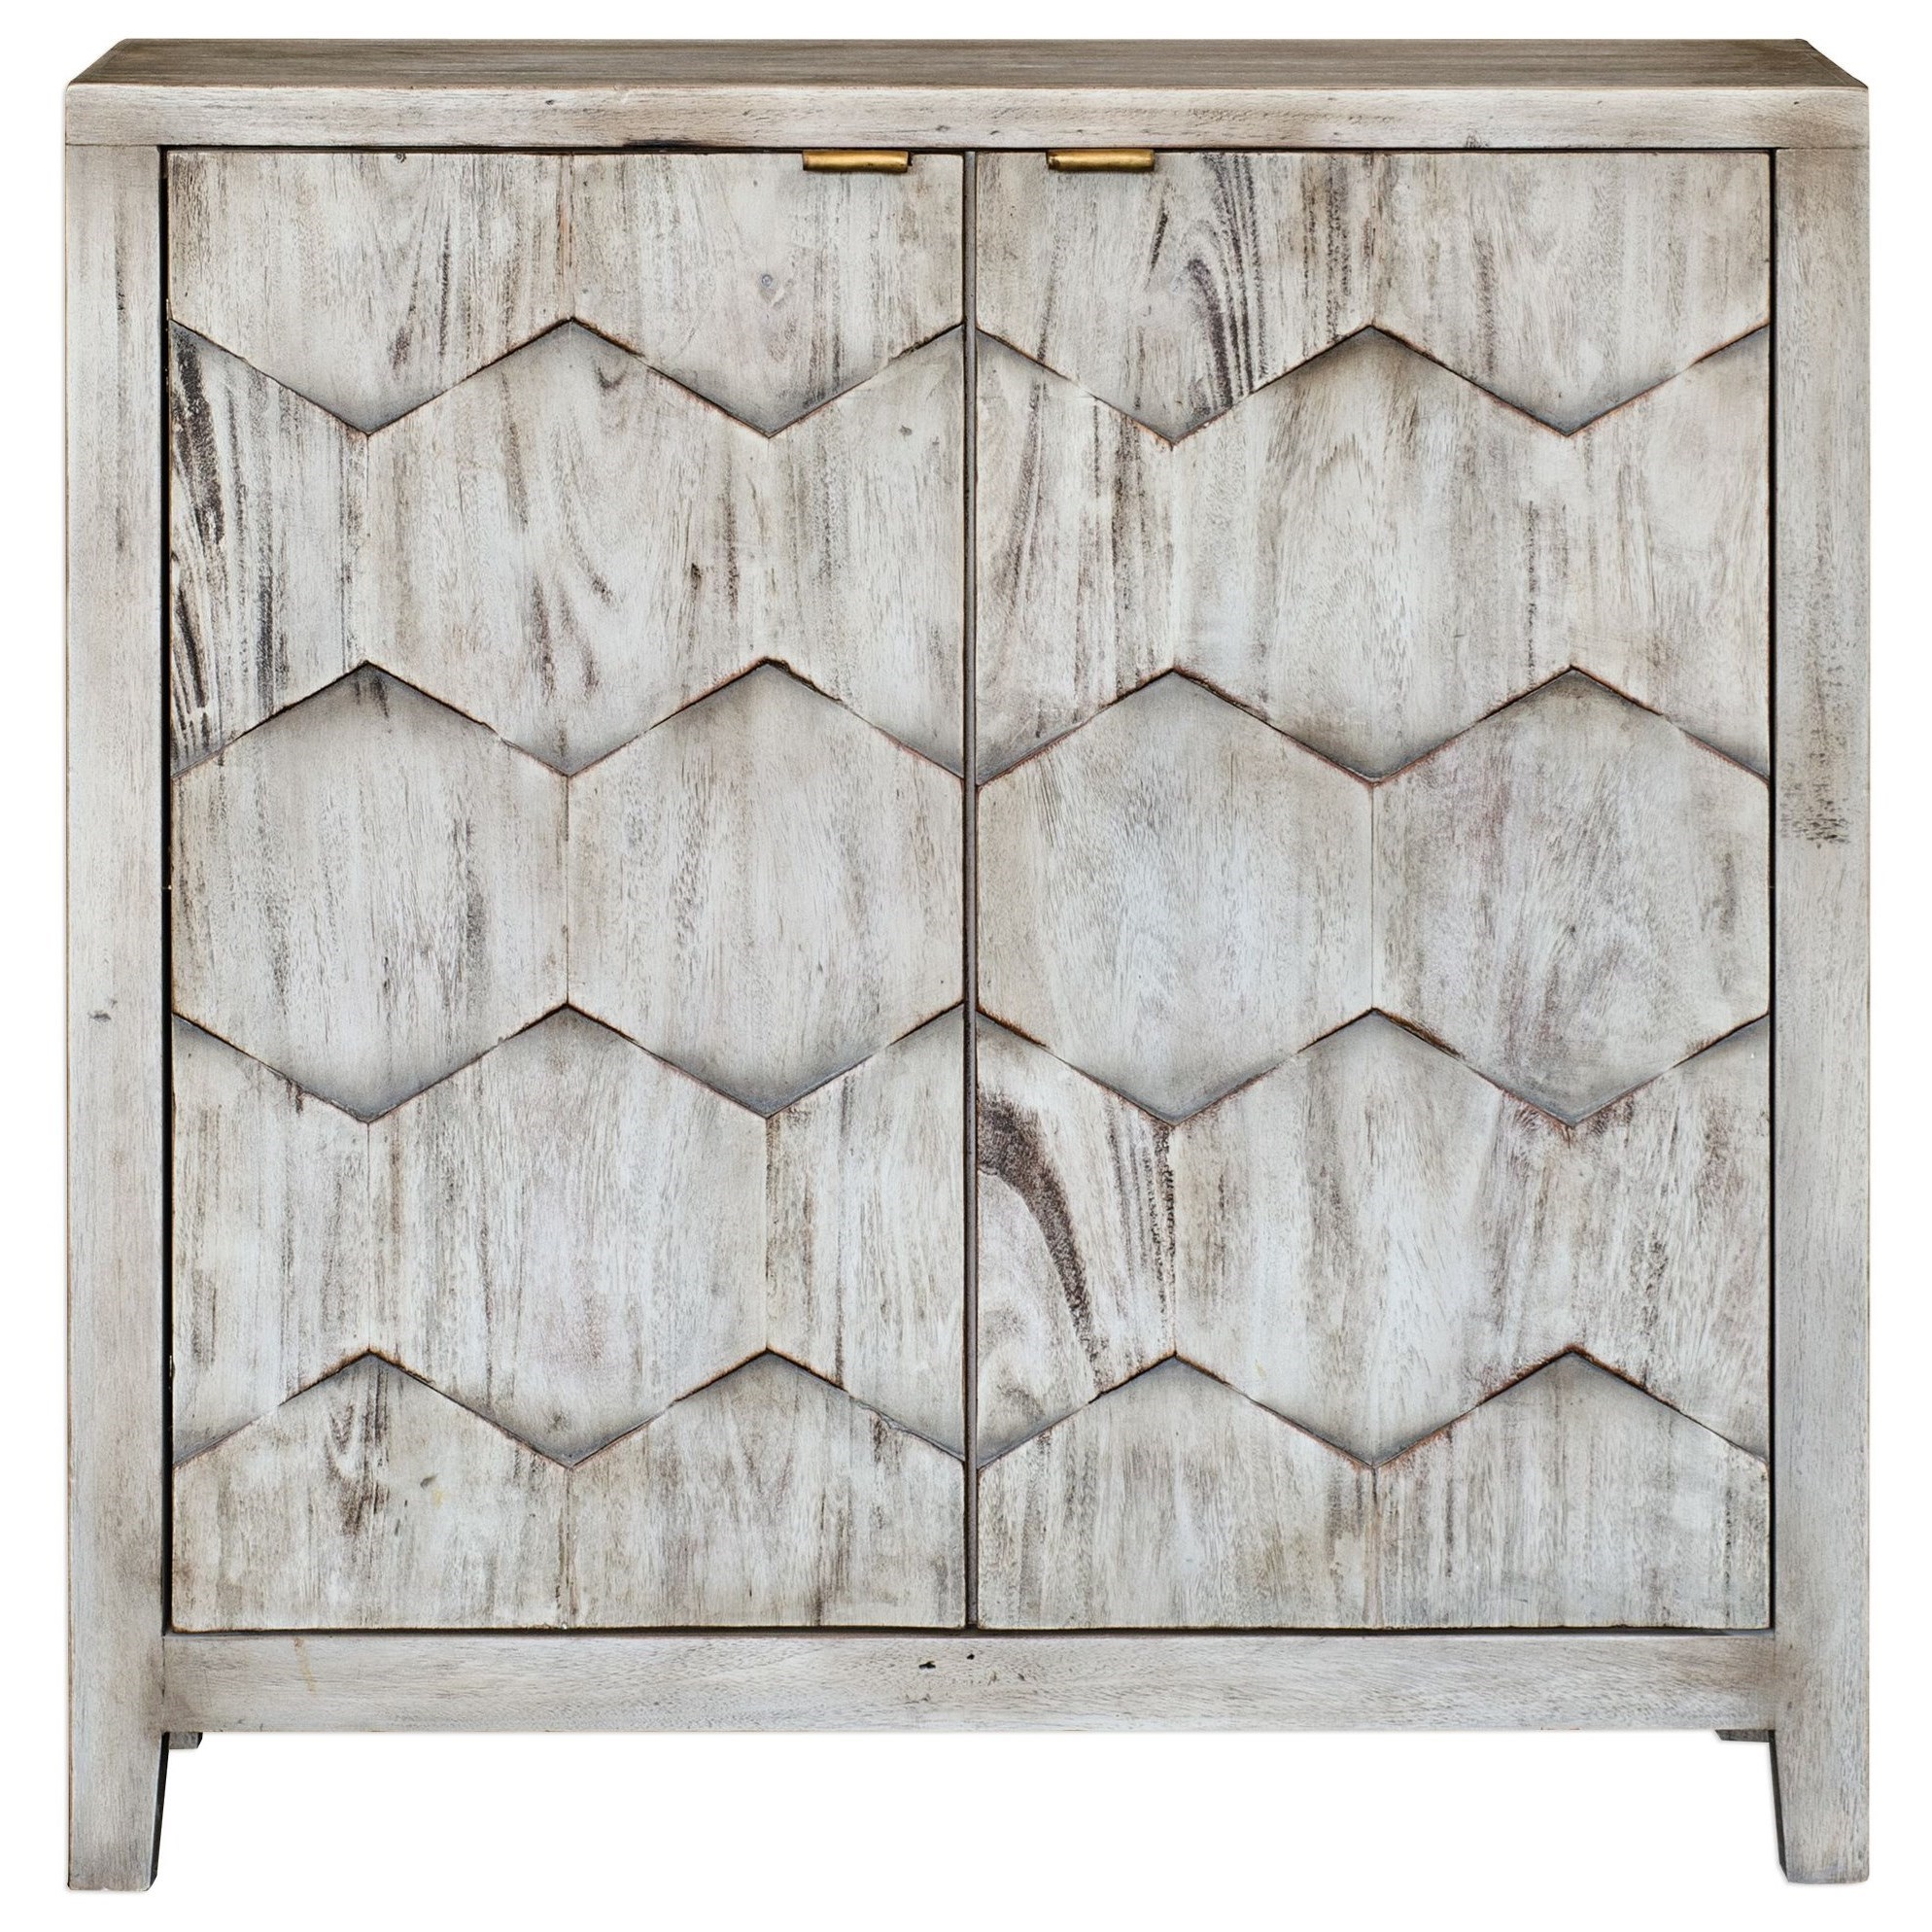 Accent Furniture - Chests Catori Smoked Ivory Console Cabinet by Uttermost at Goffena Furniture & Mattress Center